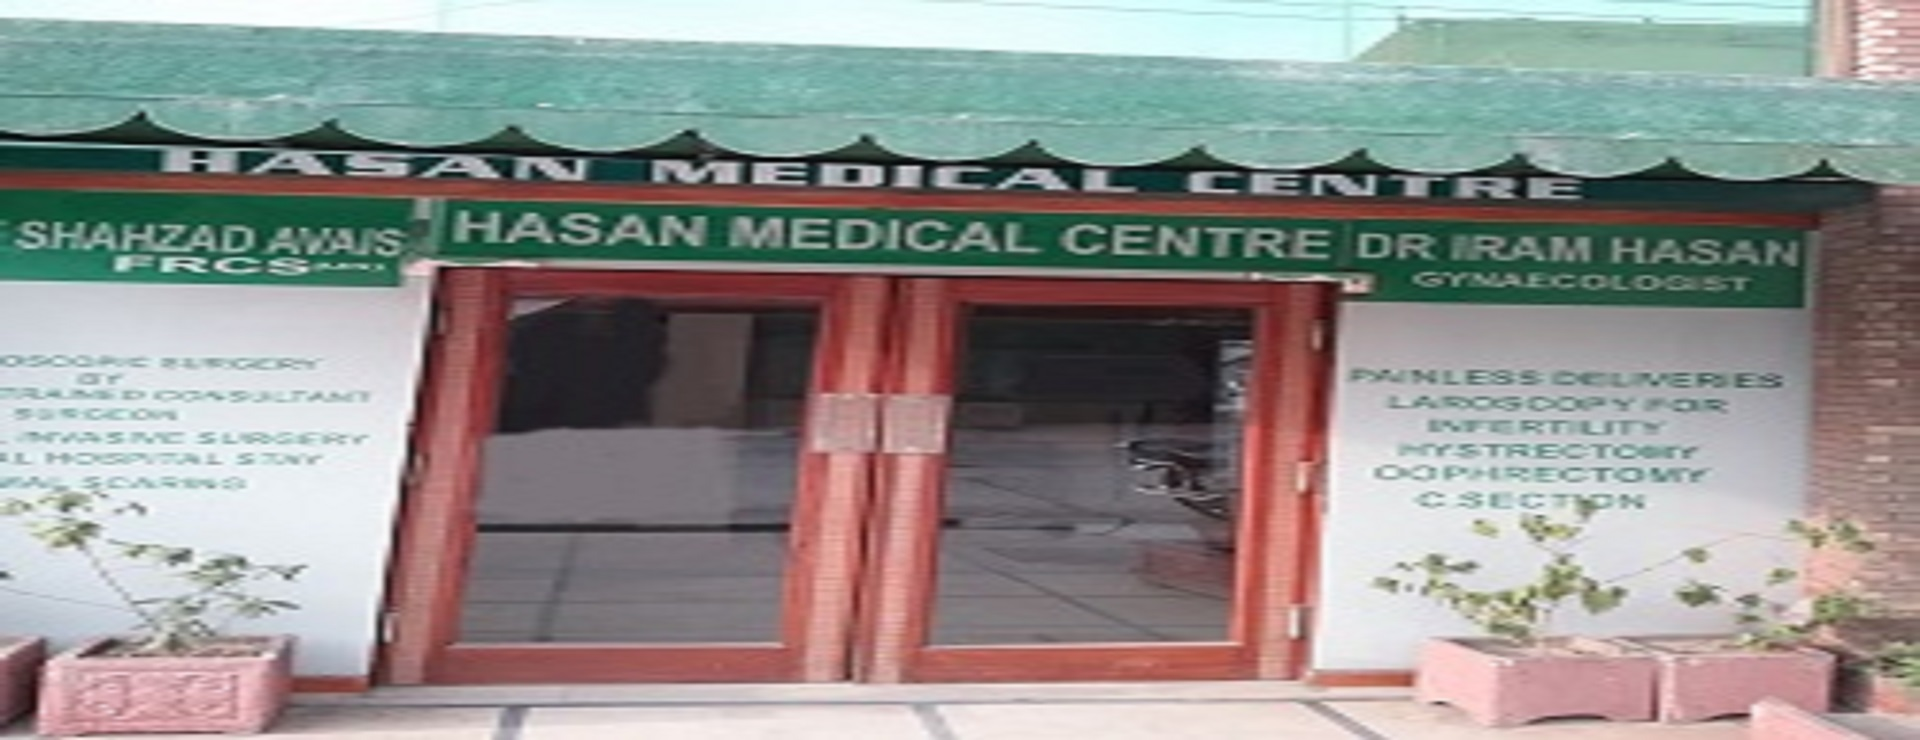 Hassan medical center